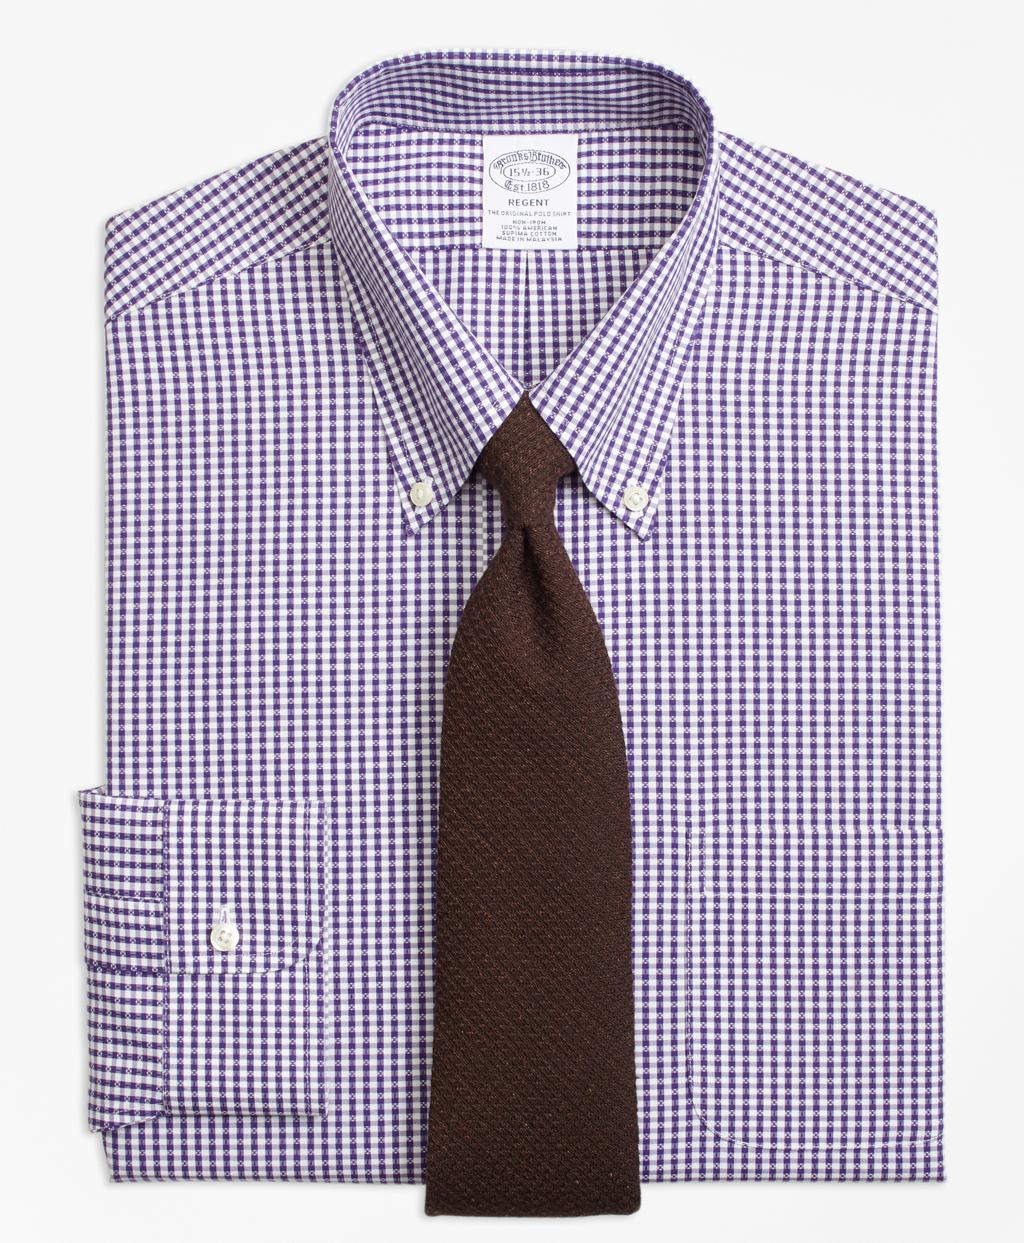 Lyst brooks brothers non iron regent fit dobby gingham for Brooks brothers non iron shirts review